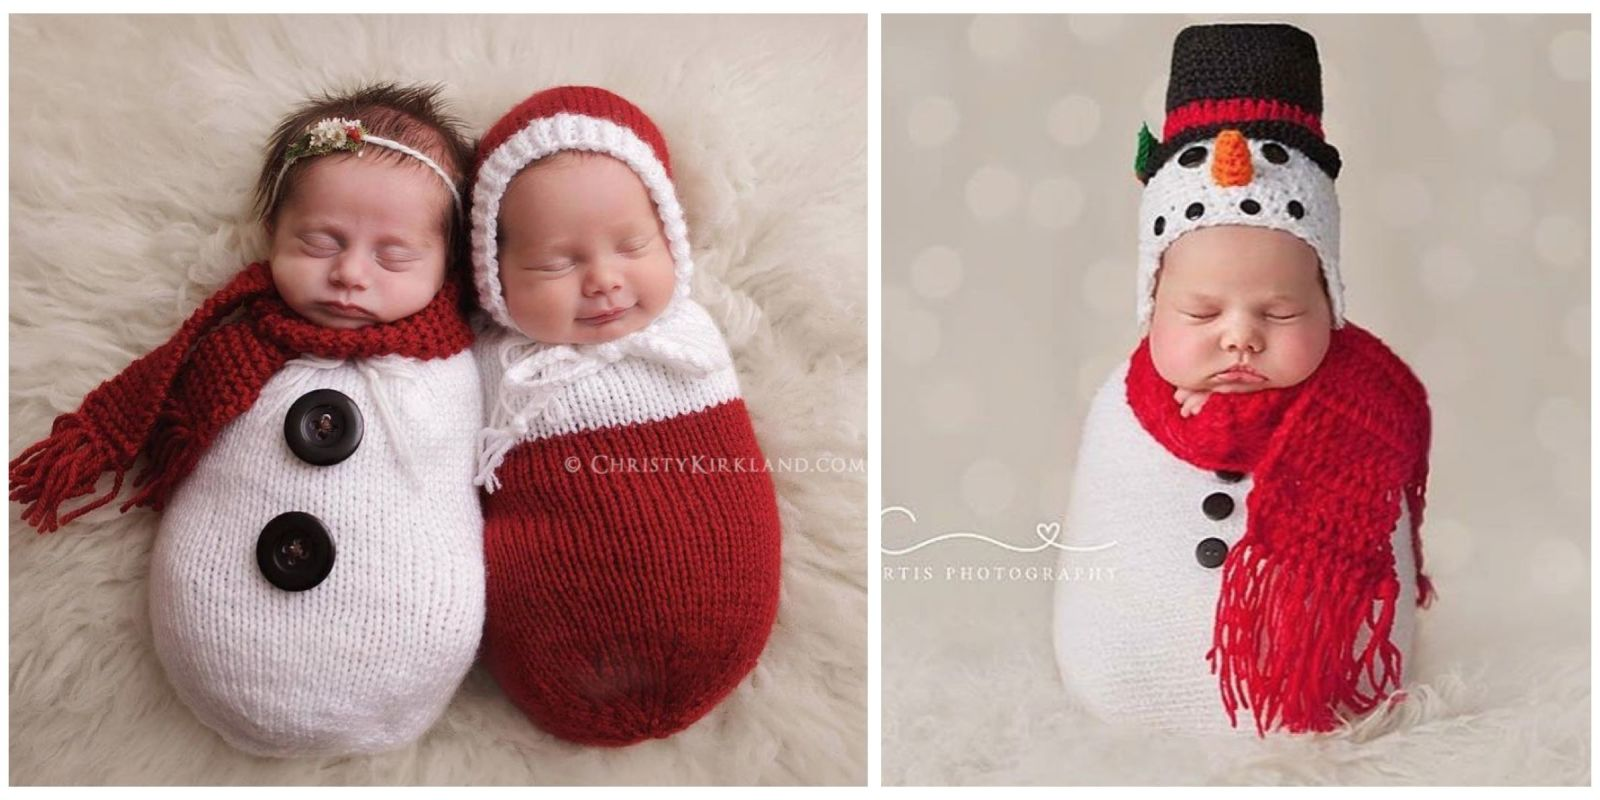 Knitted Christmas Outfits For Babies Cute Baby Christmas